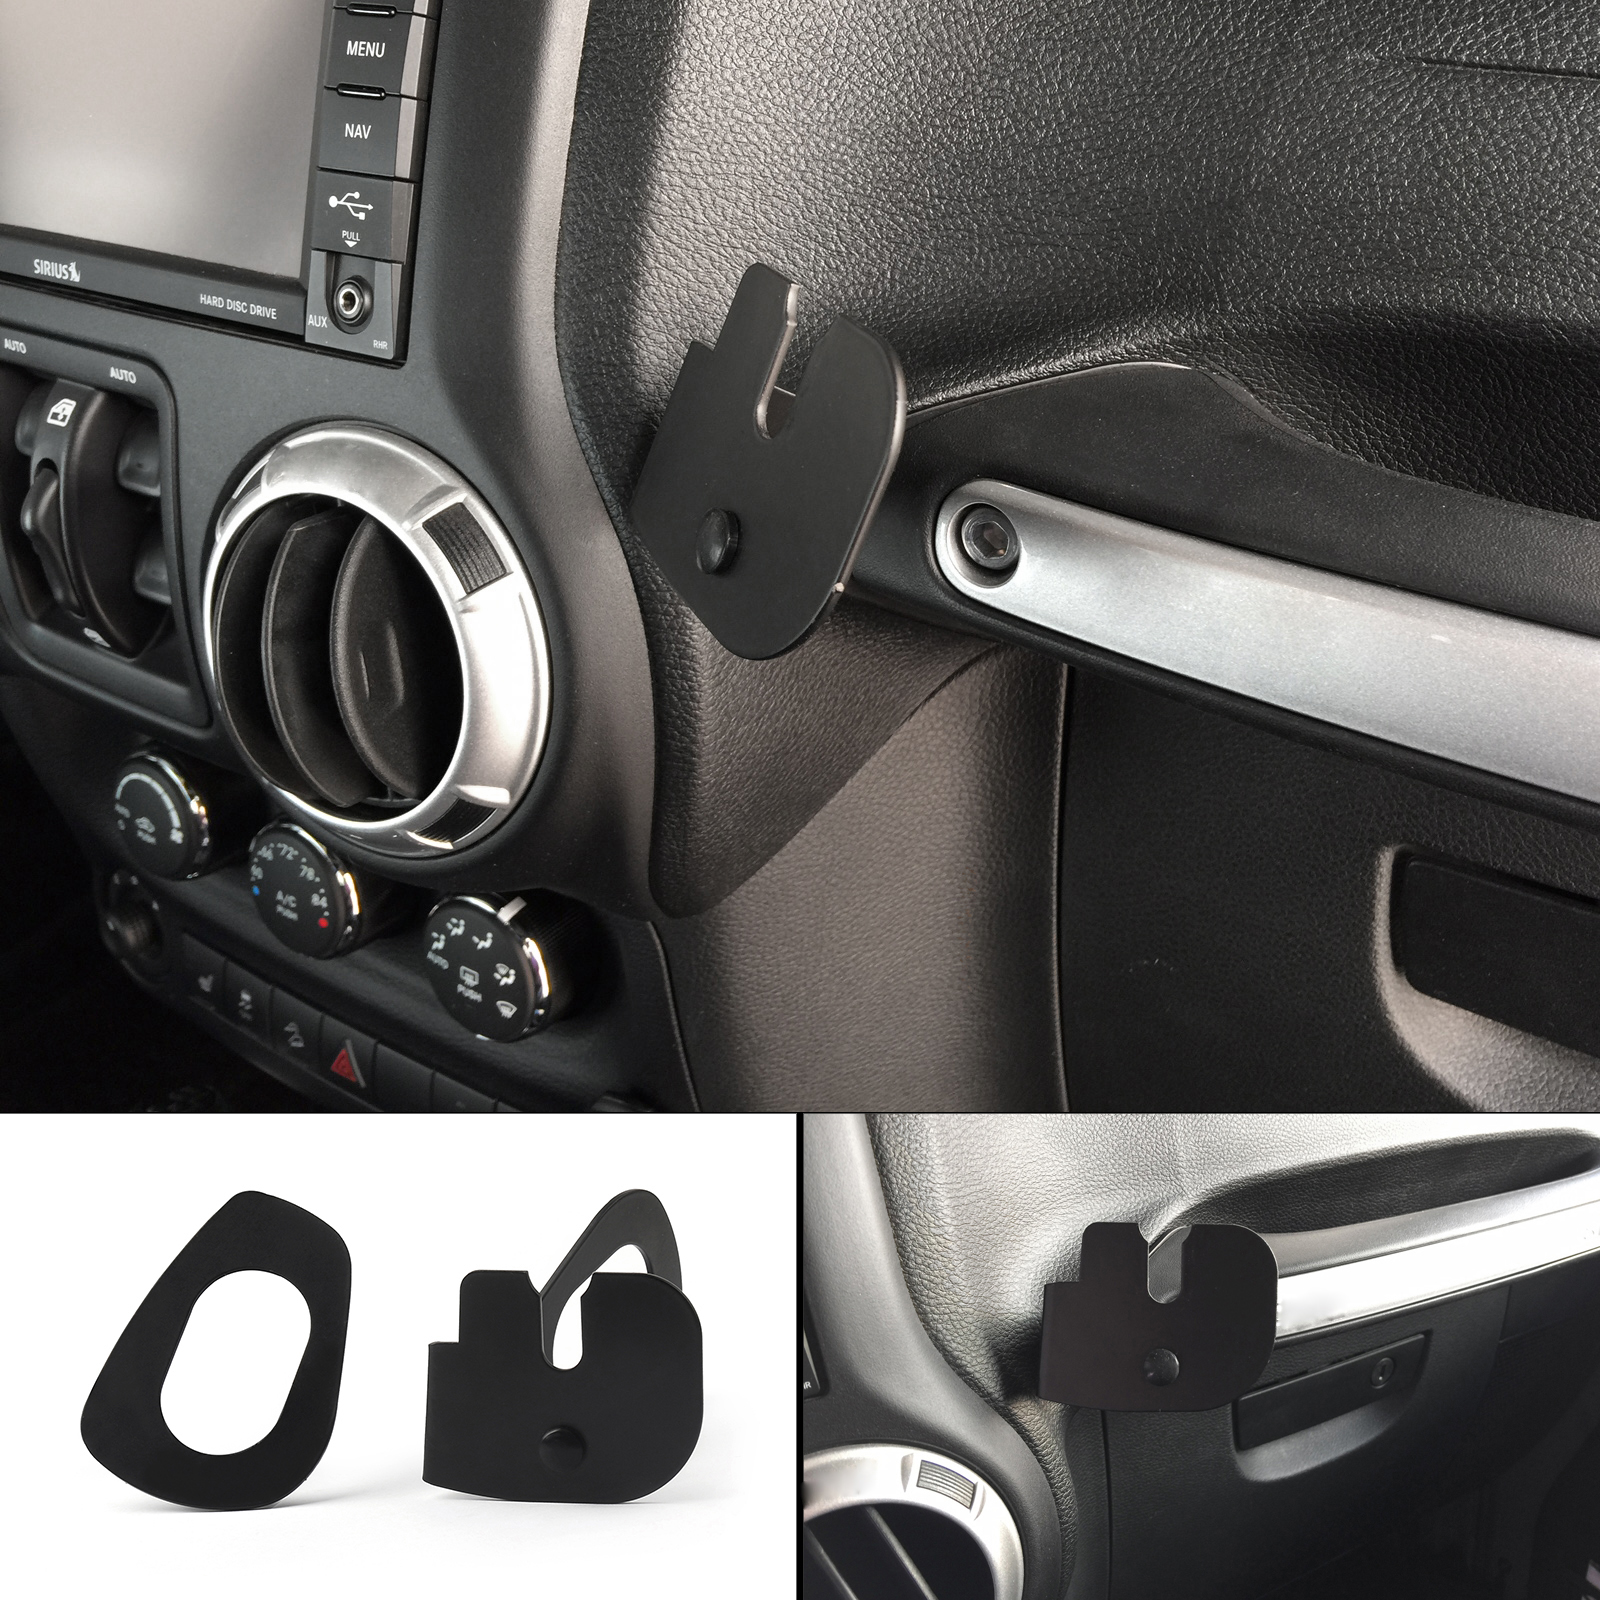 Artudatech For Wrangler JK 2011+ 75WXST CB Radio Mic Mount Holder Passenger Grab Bar Walkie Talkie Accessories